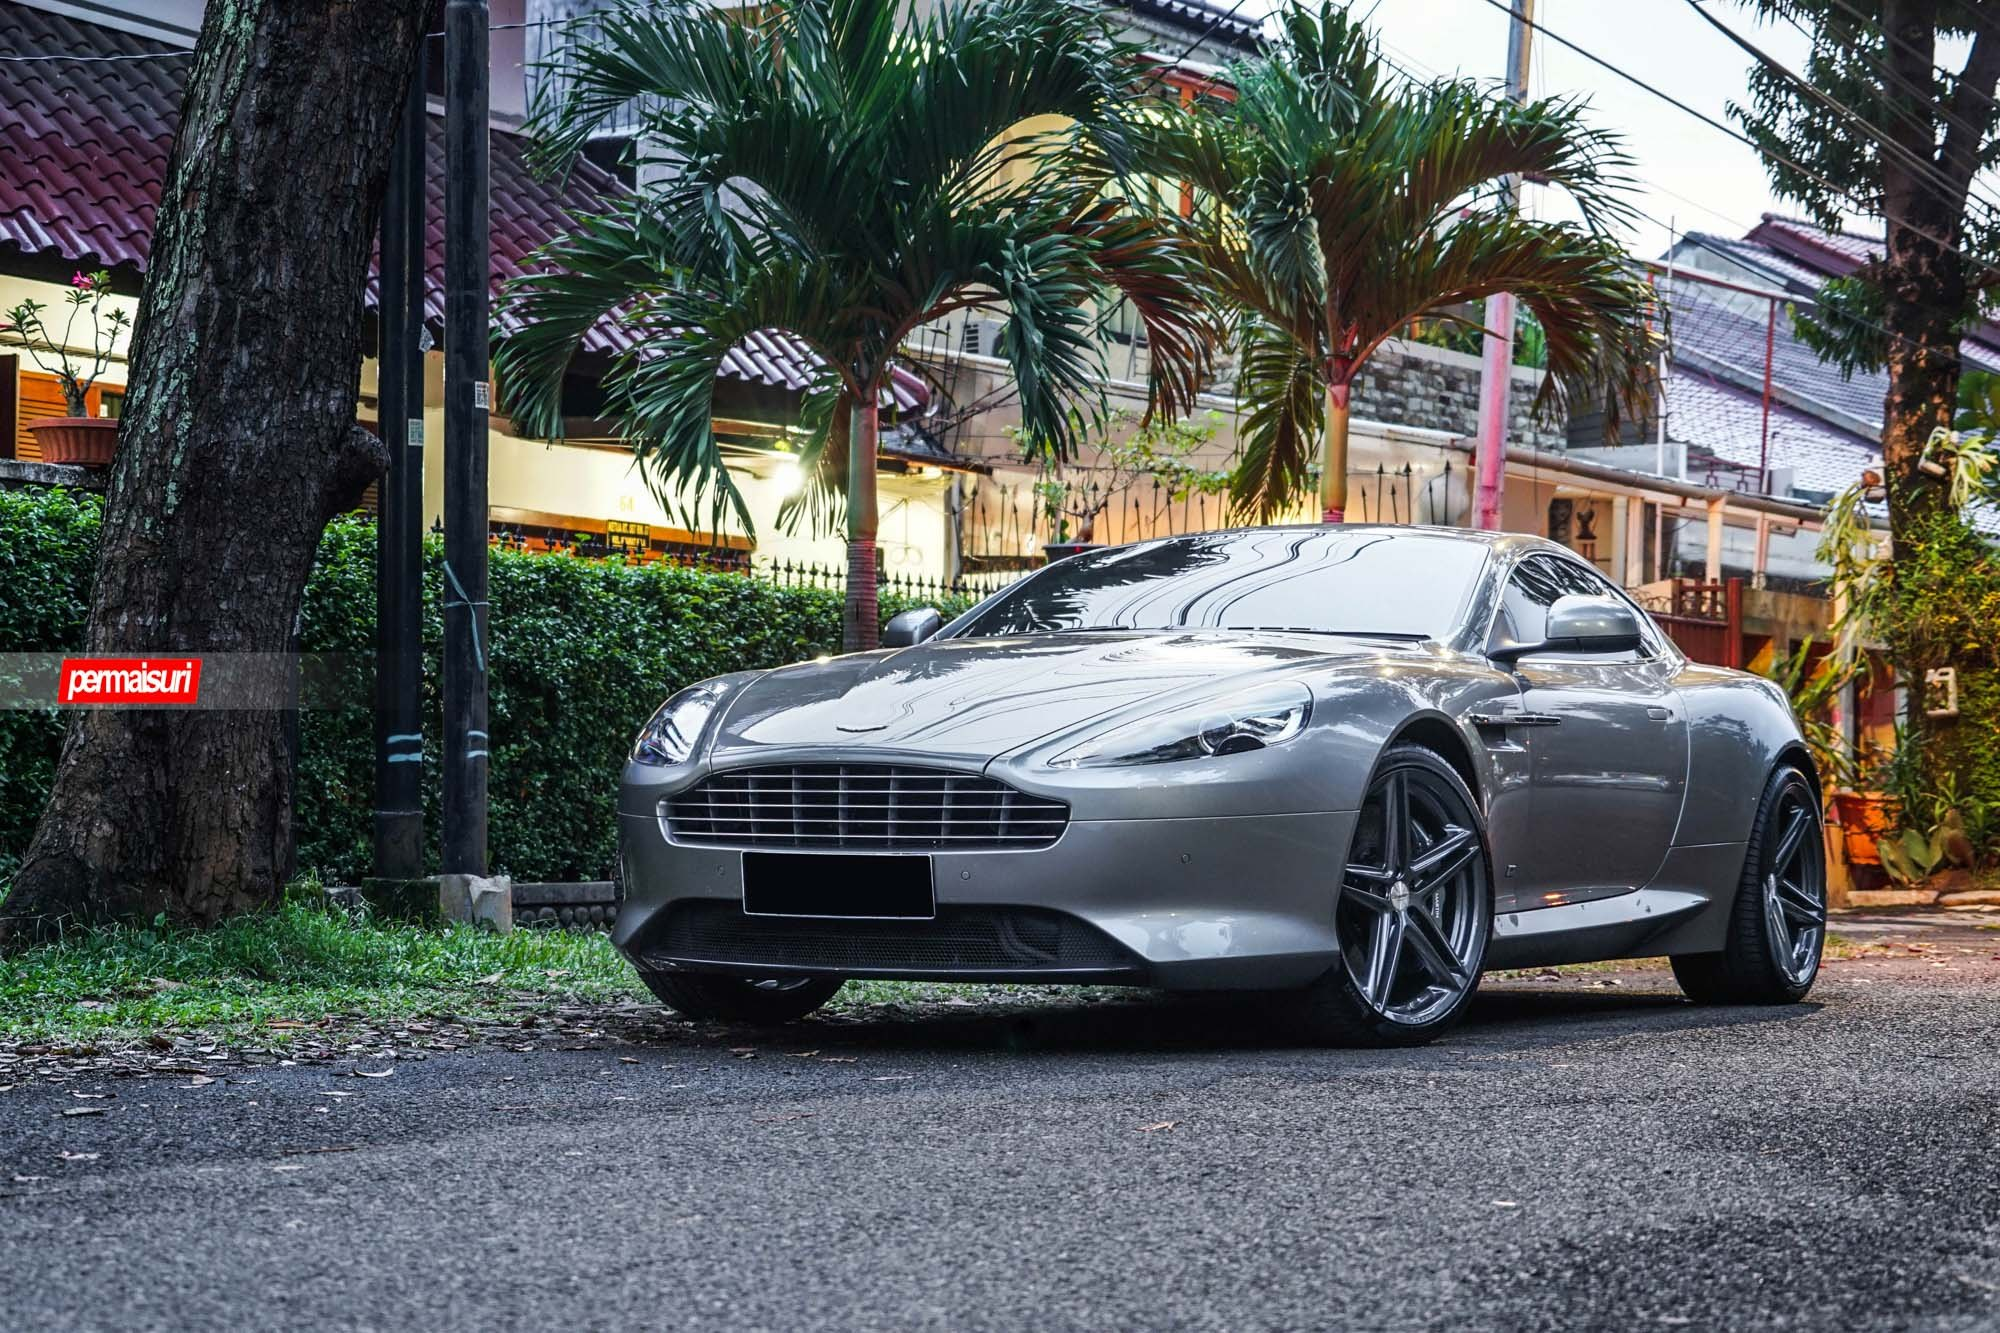 Custom aston martin db 9 images mods photos upgrades carid custom grille on aston martin photo by vossen sciox Images